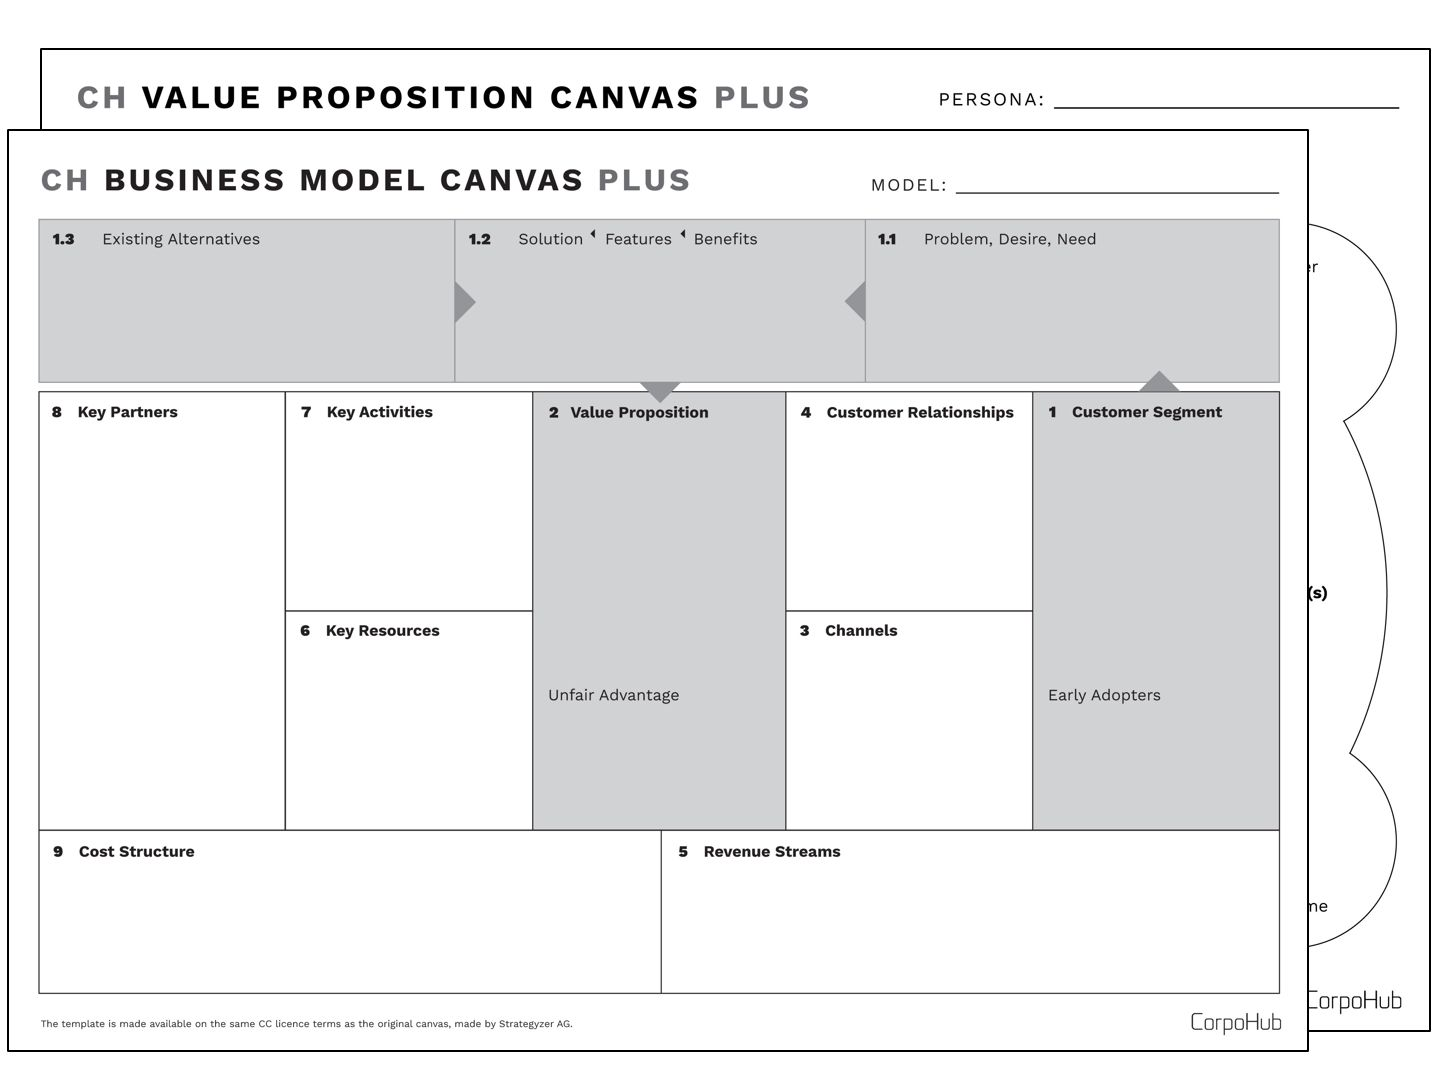 Adapted Business Model Canvas Plus and Value Proposition Canvas Plus